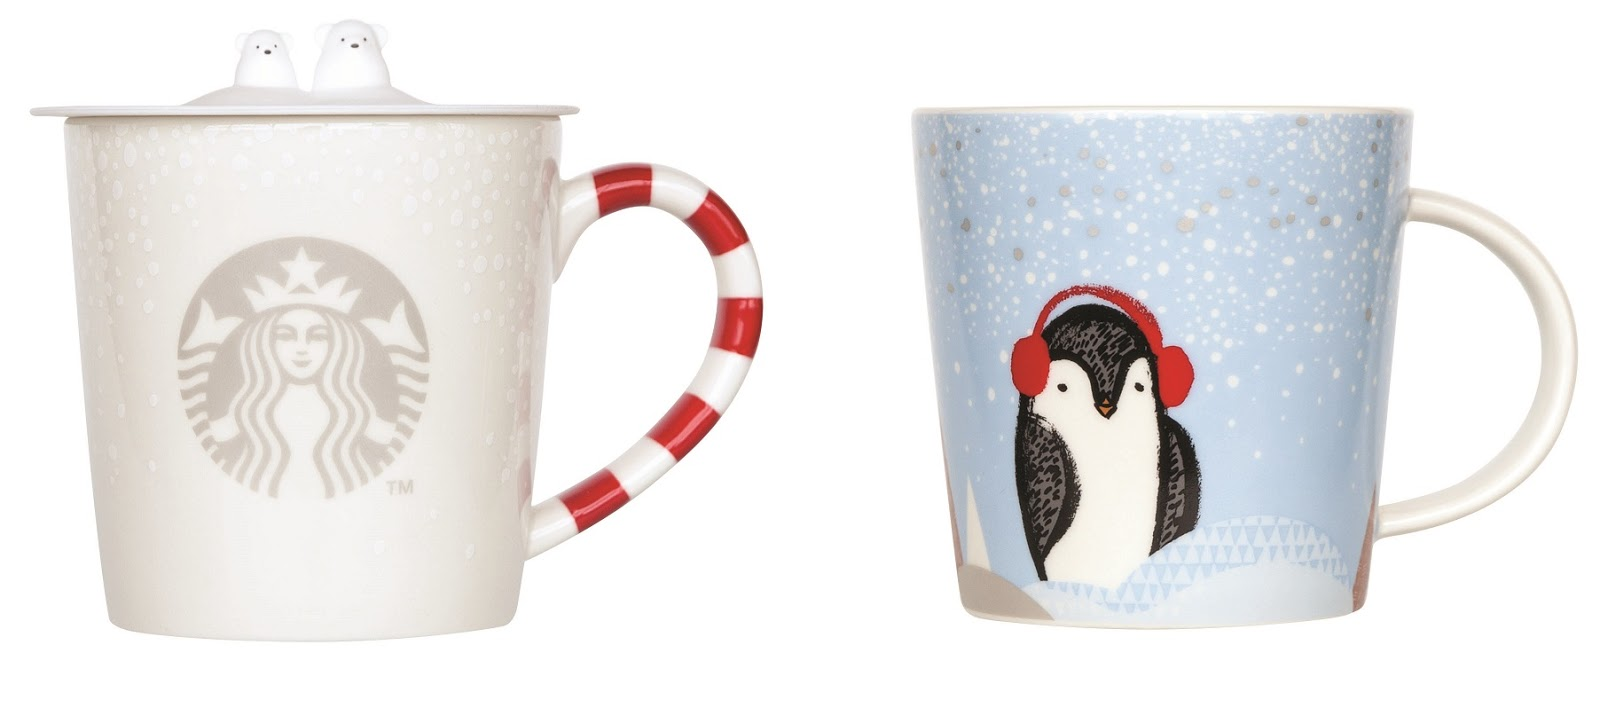 candy cane mug with silicone cover php595 penguin mug php525